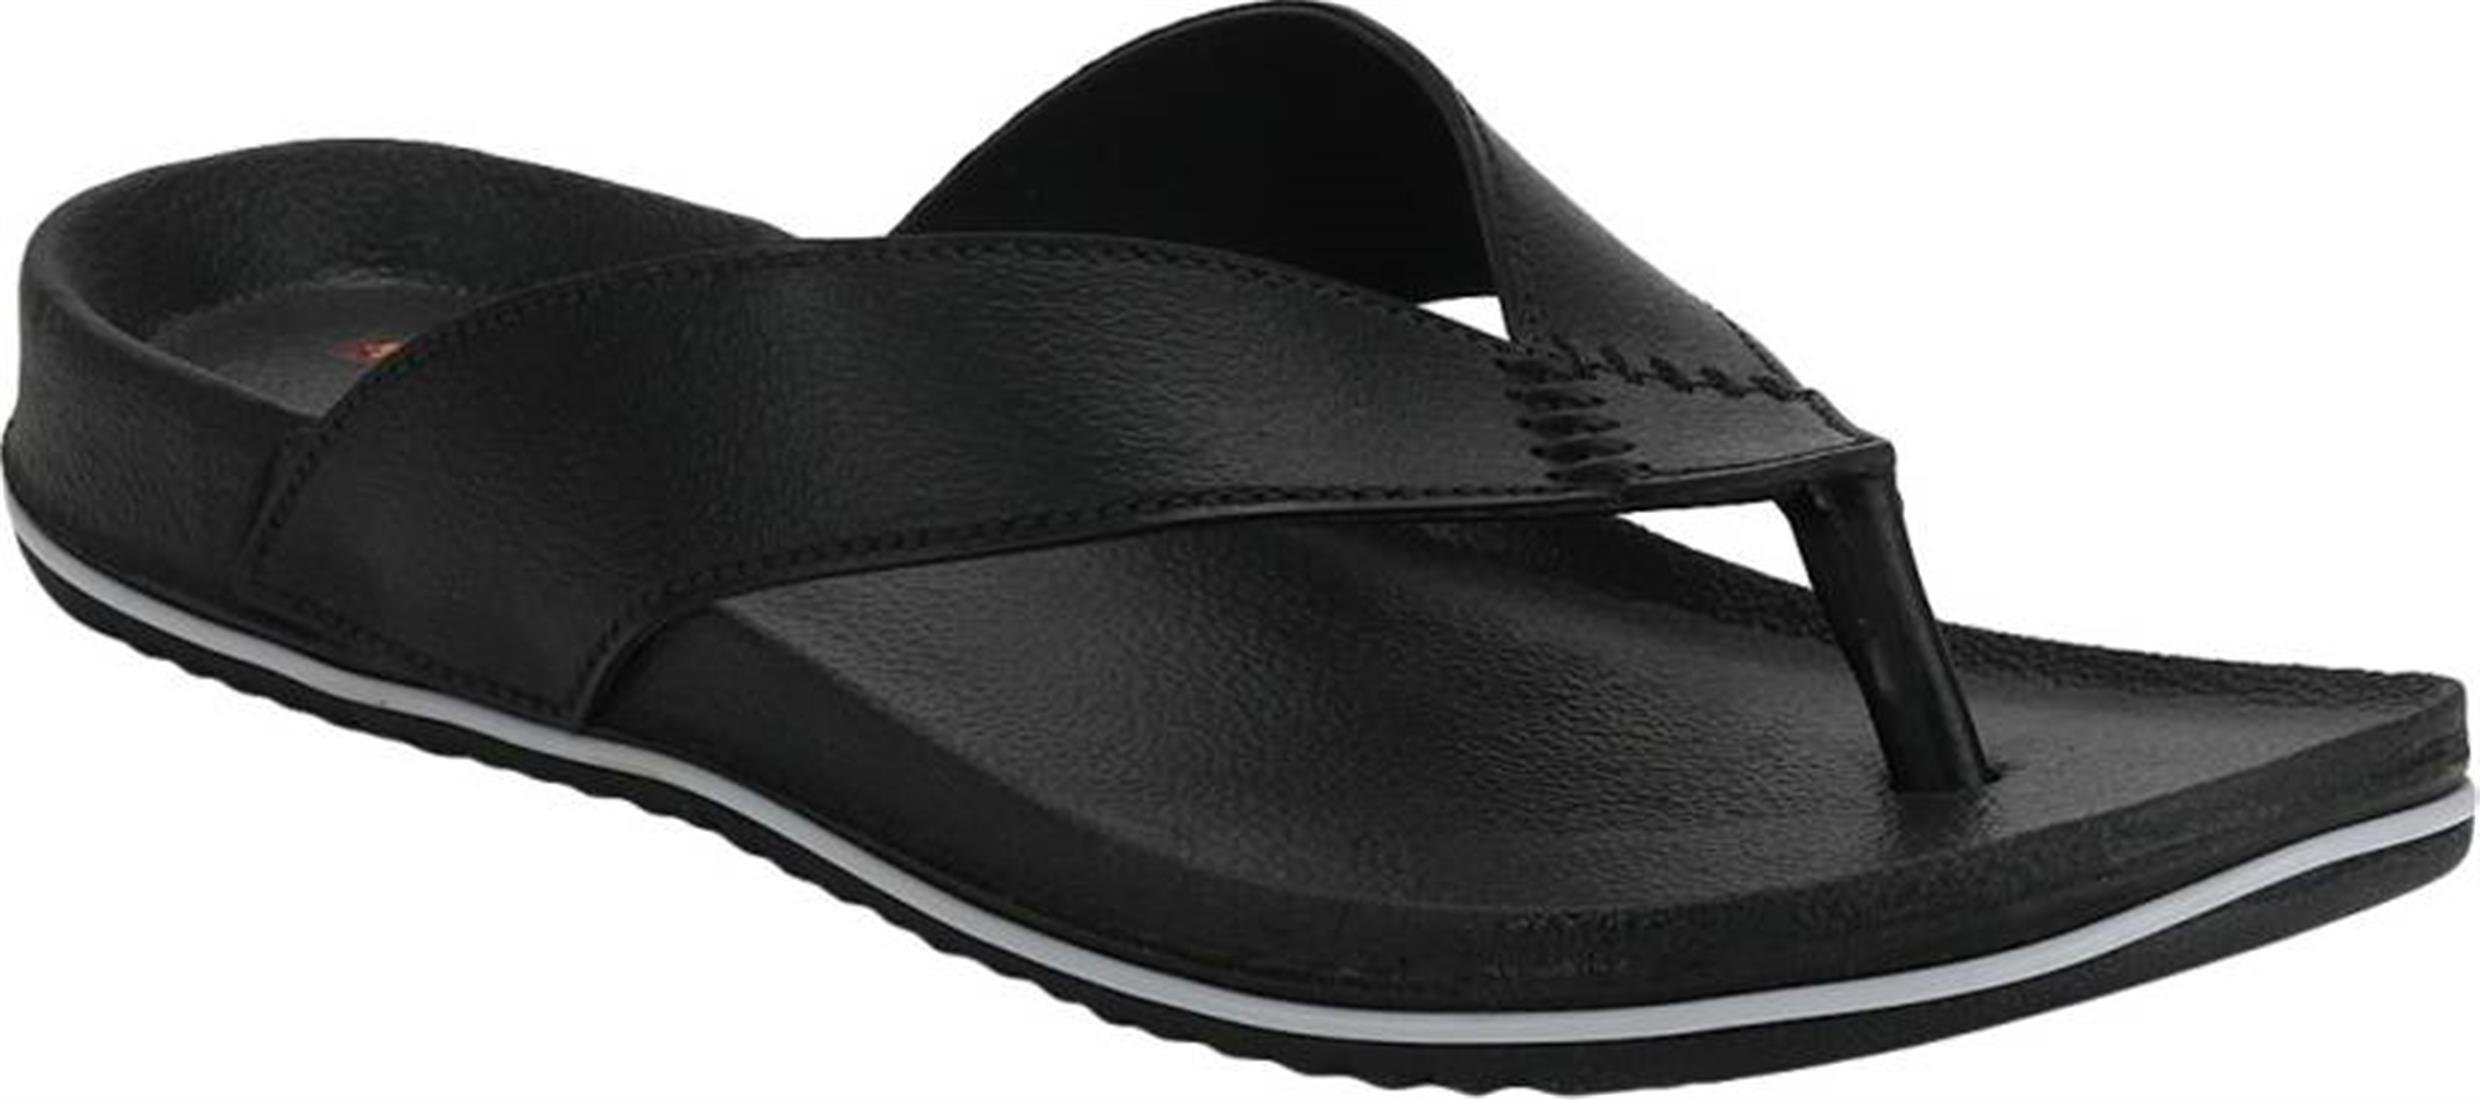 c2973b6455c6 DzVR Men's And Boy's Black Slippers And Flip Flops – Shopss